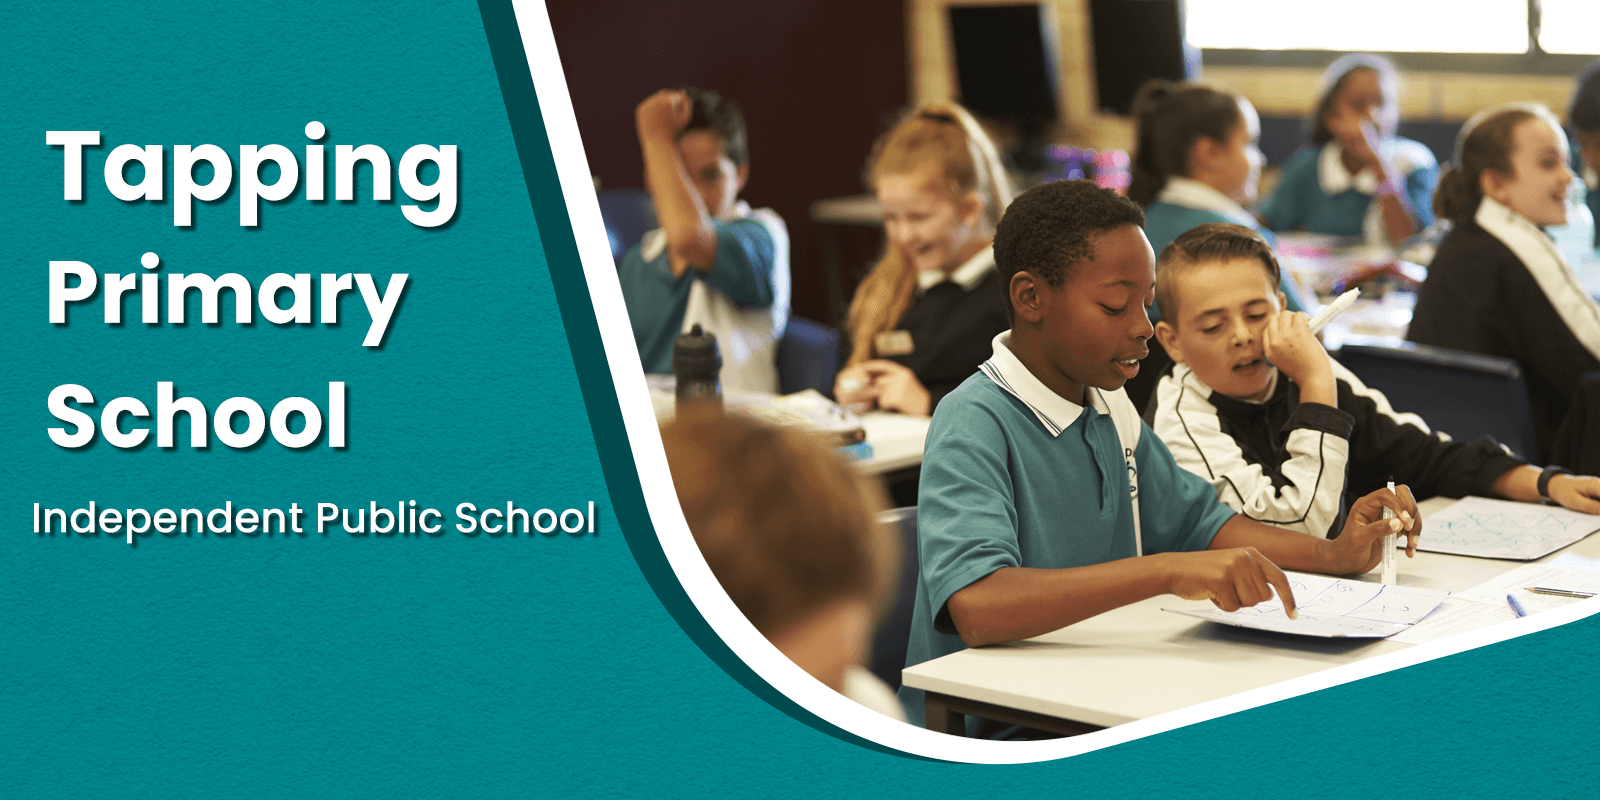 Tapping Primary School Creating Opportunities